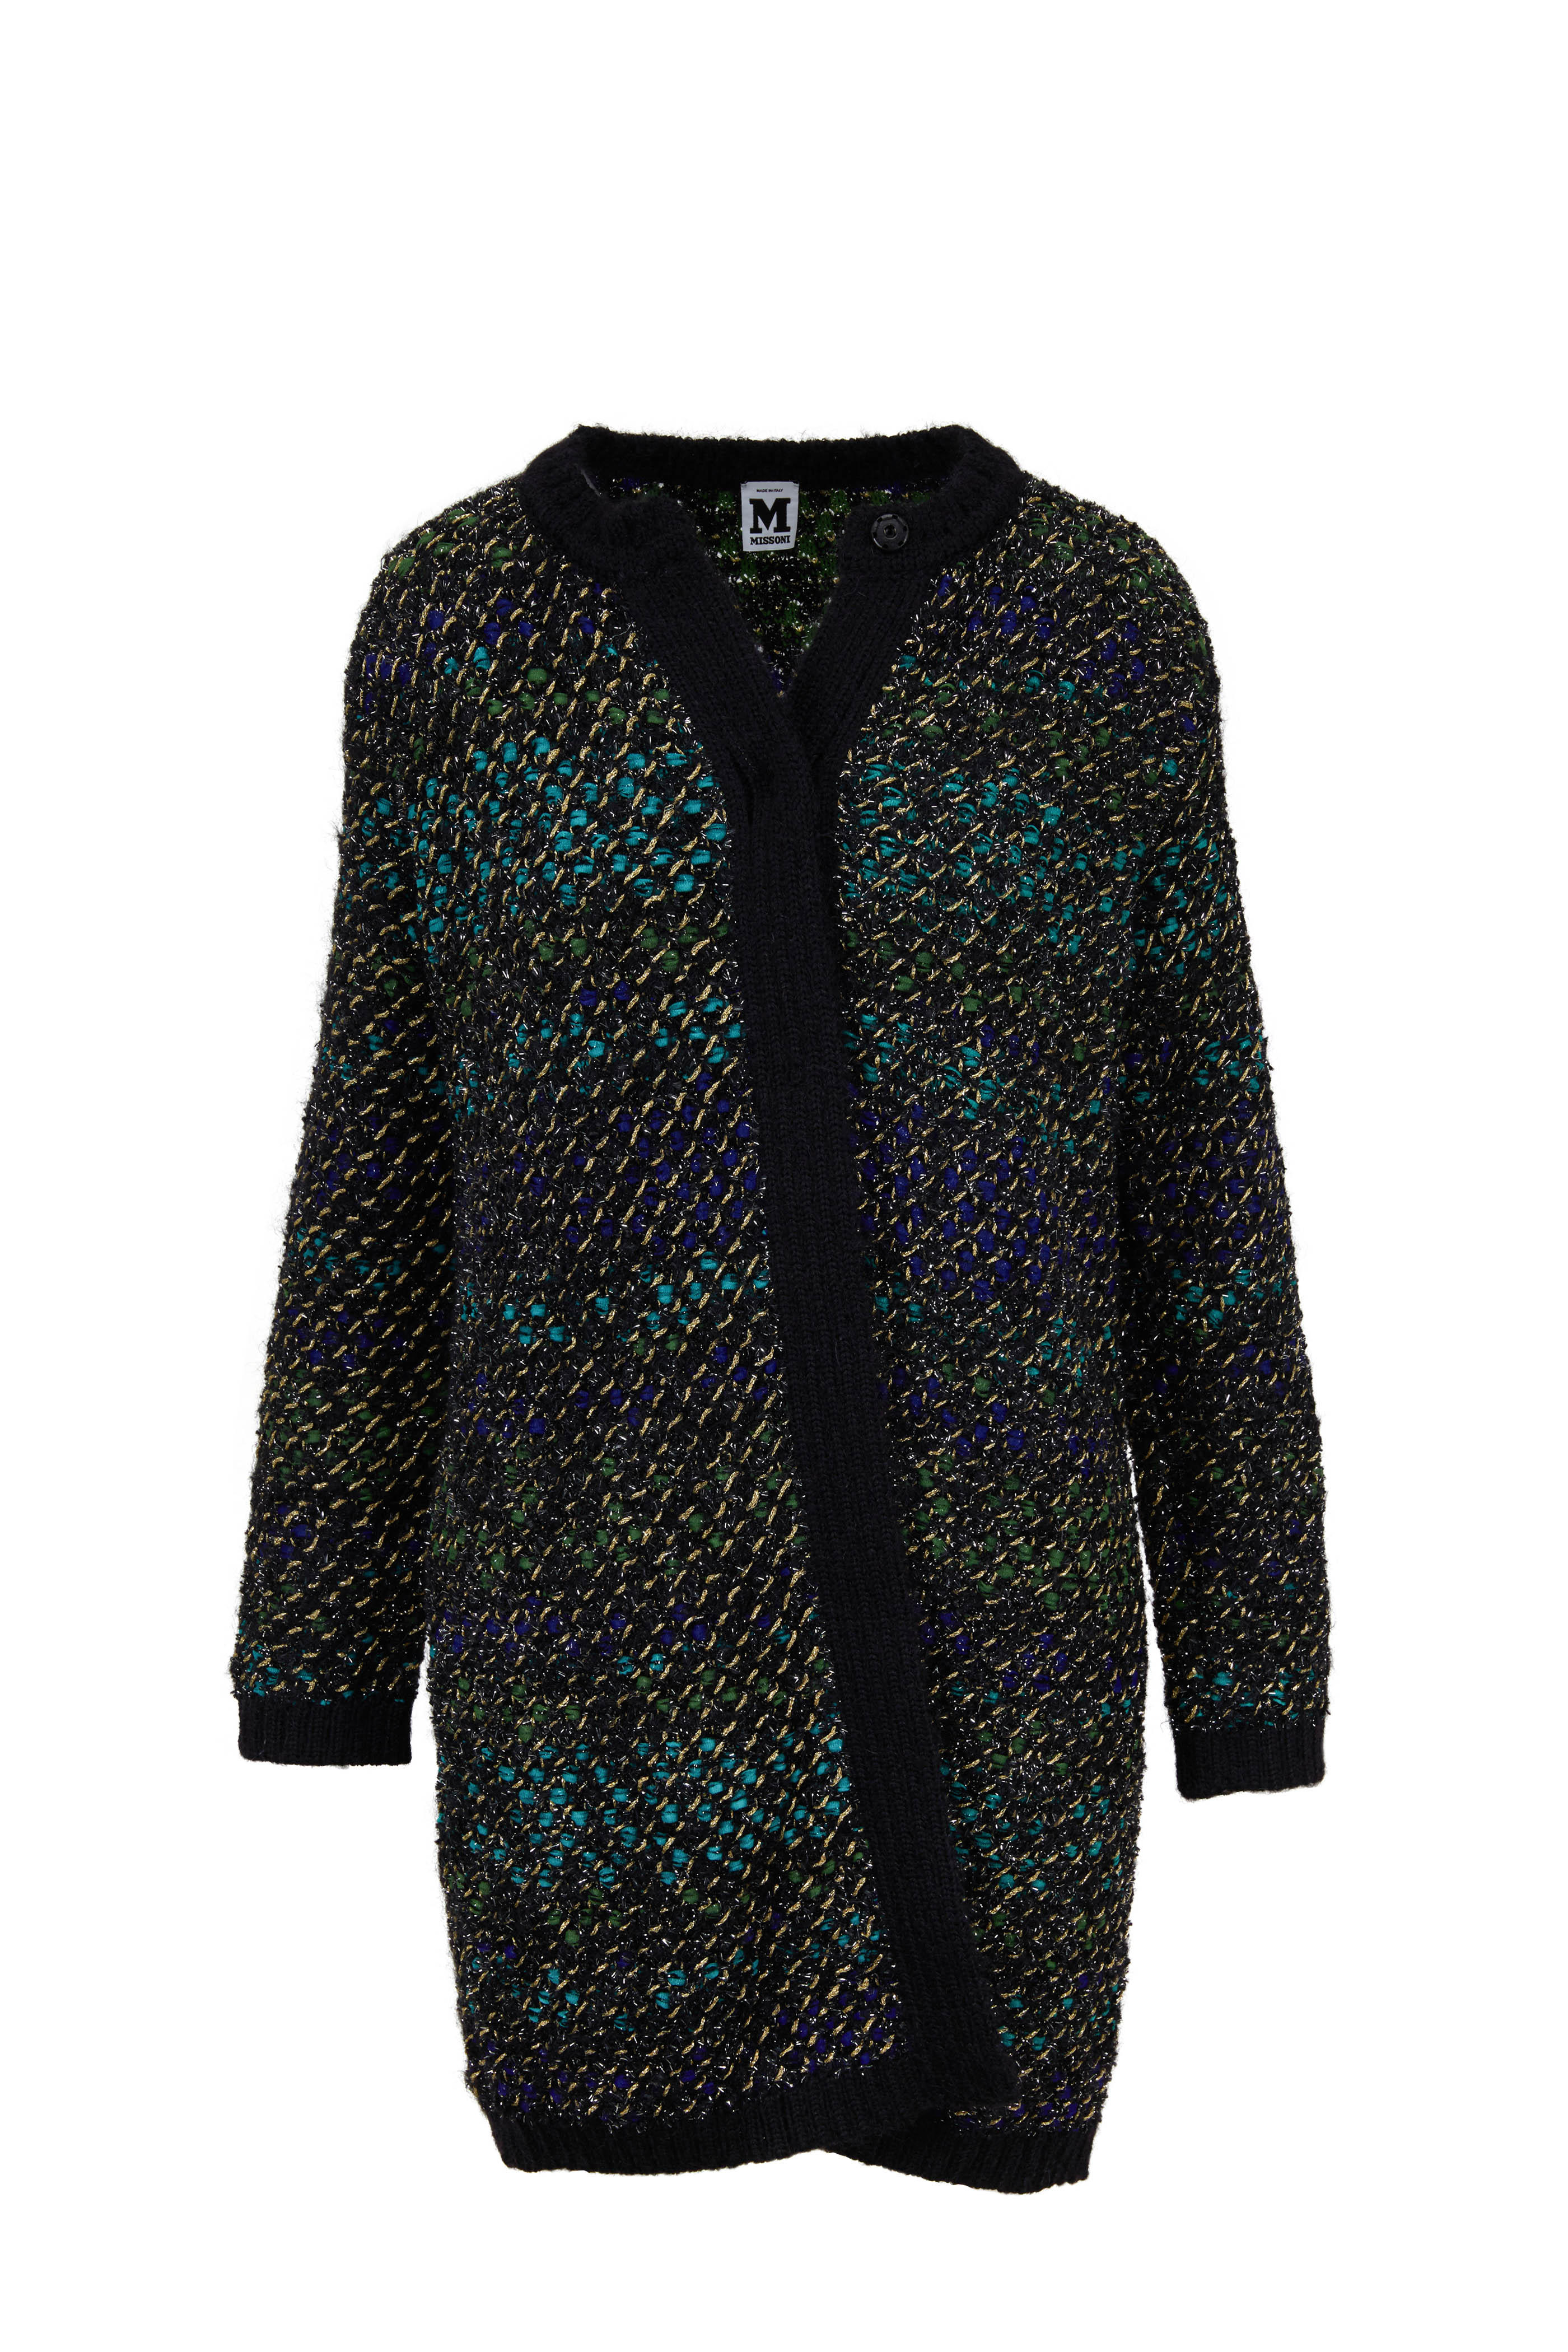 c726b56bd5 M Missoni - Black Multi Knit Tweed Long Cardigan